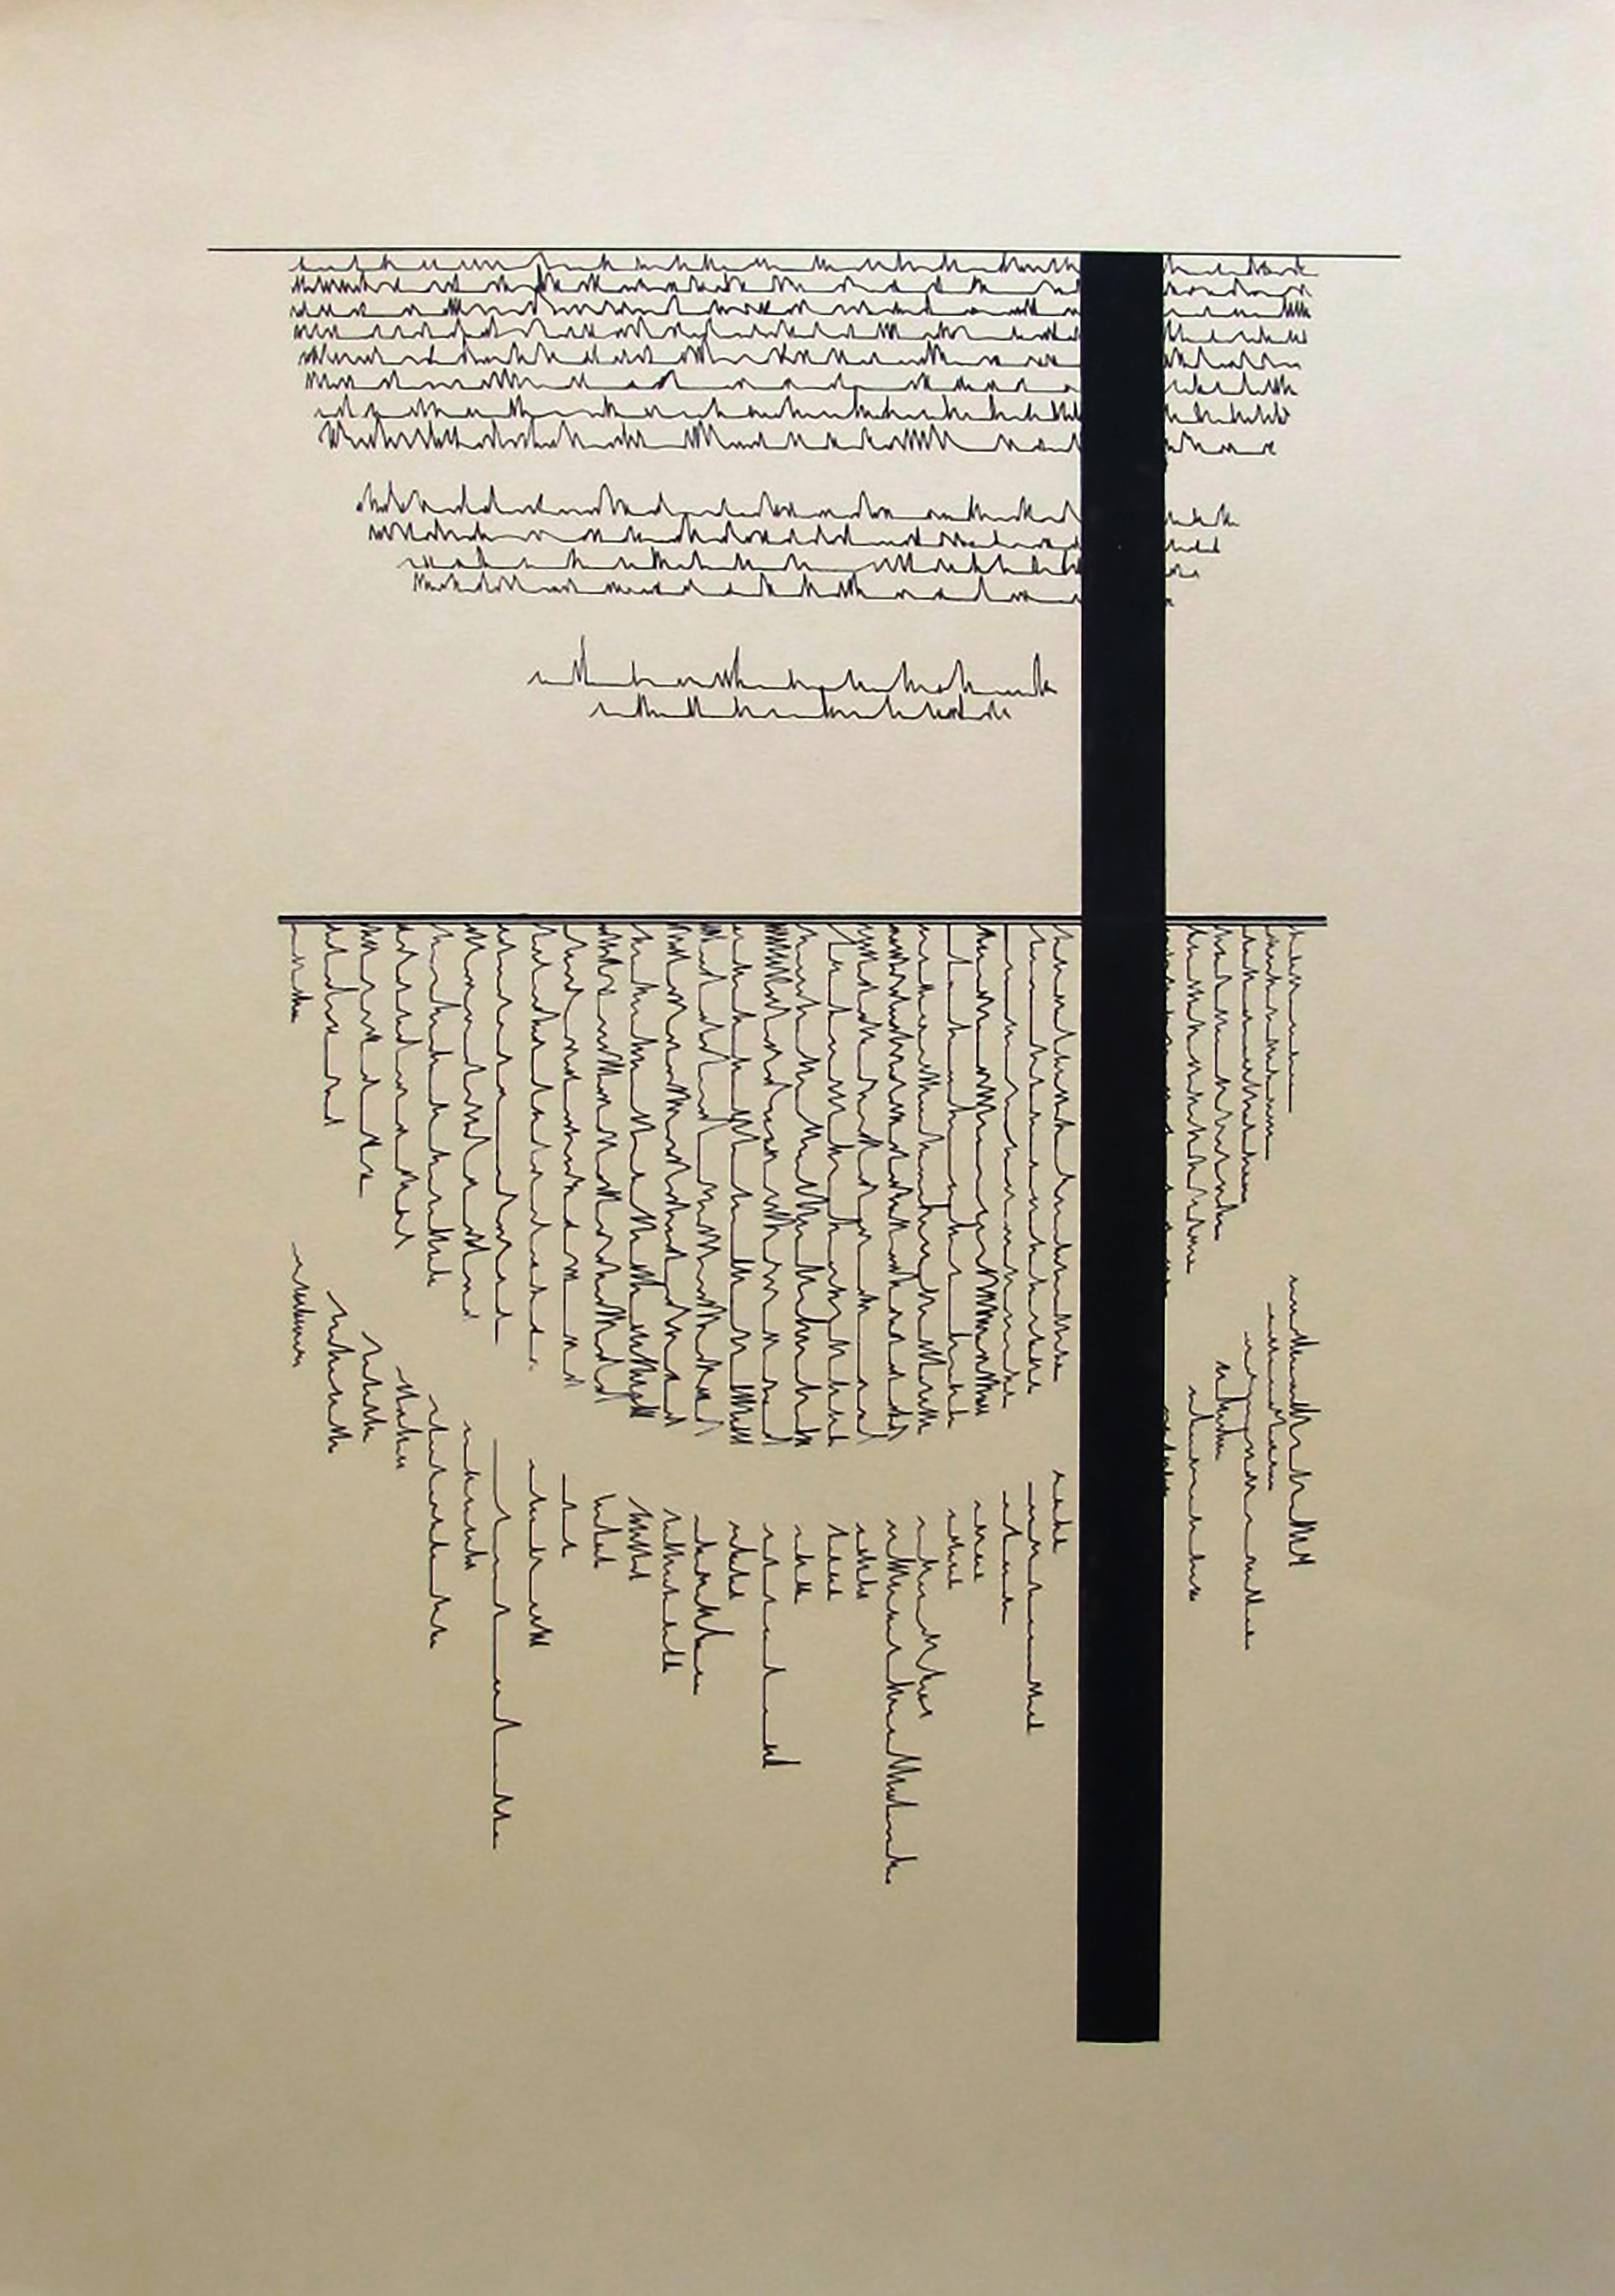 Serie II number 5-combination of minimalism geometric draw and abstract writing